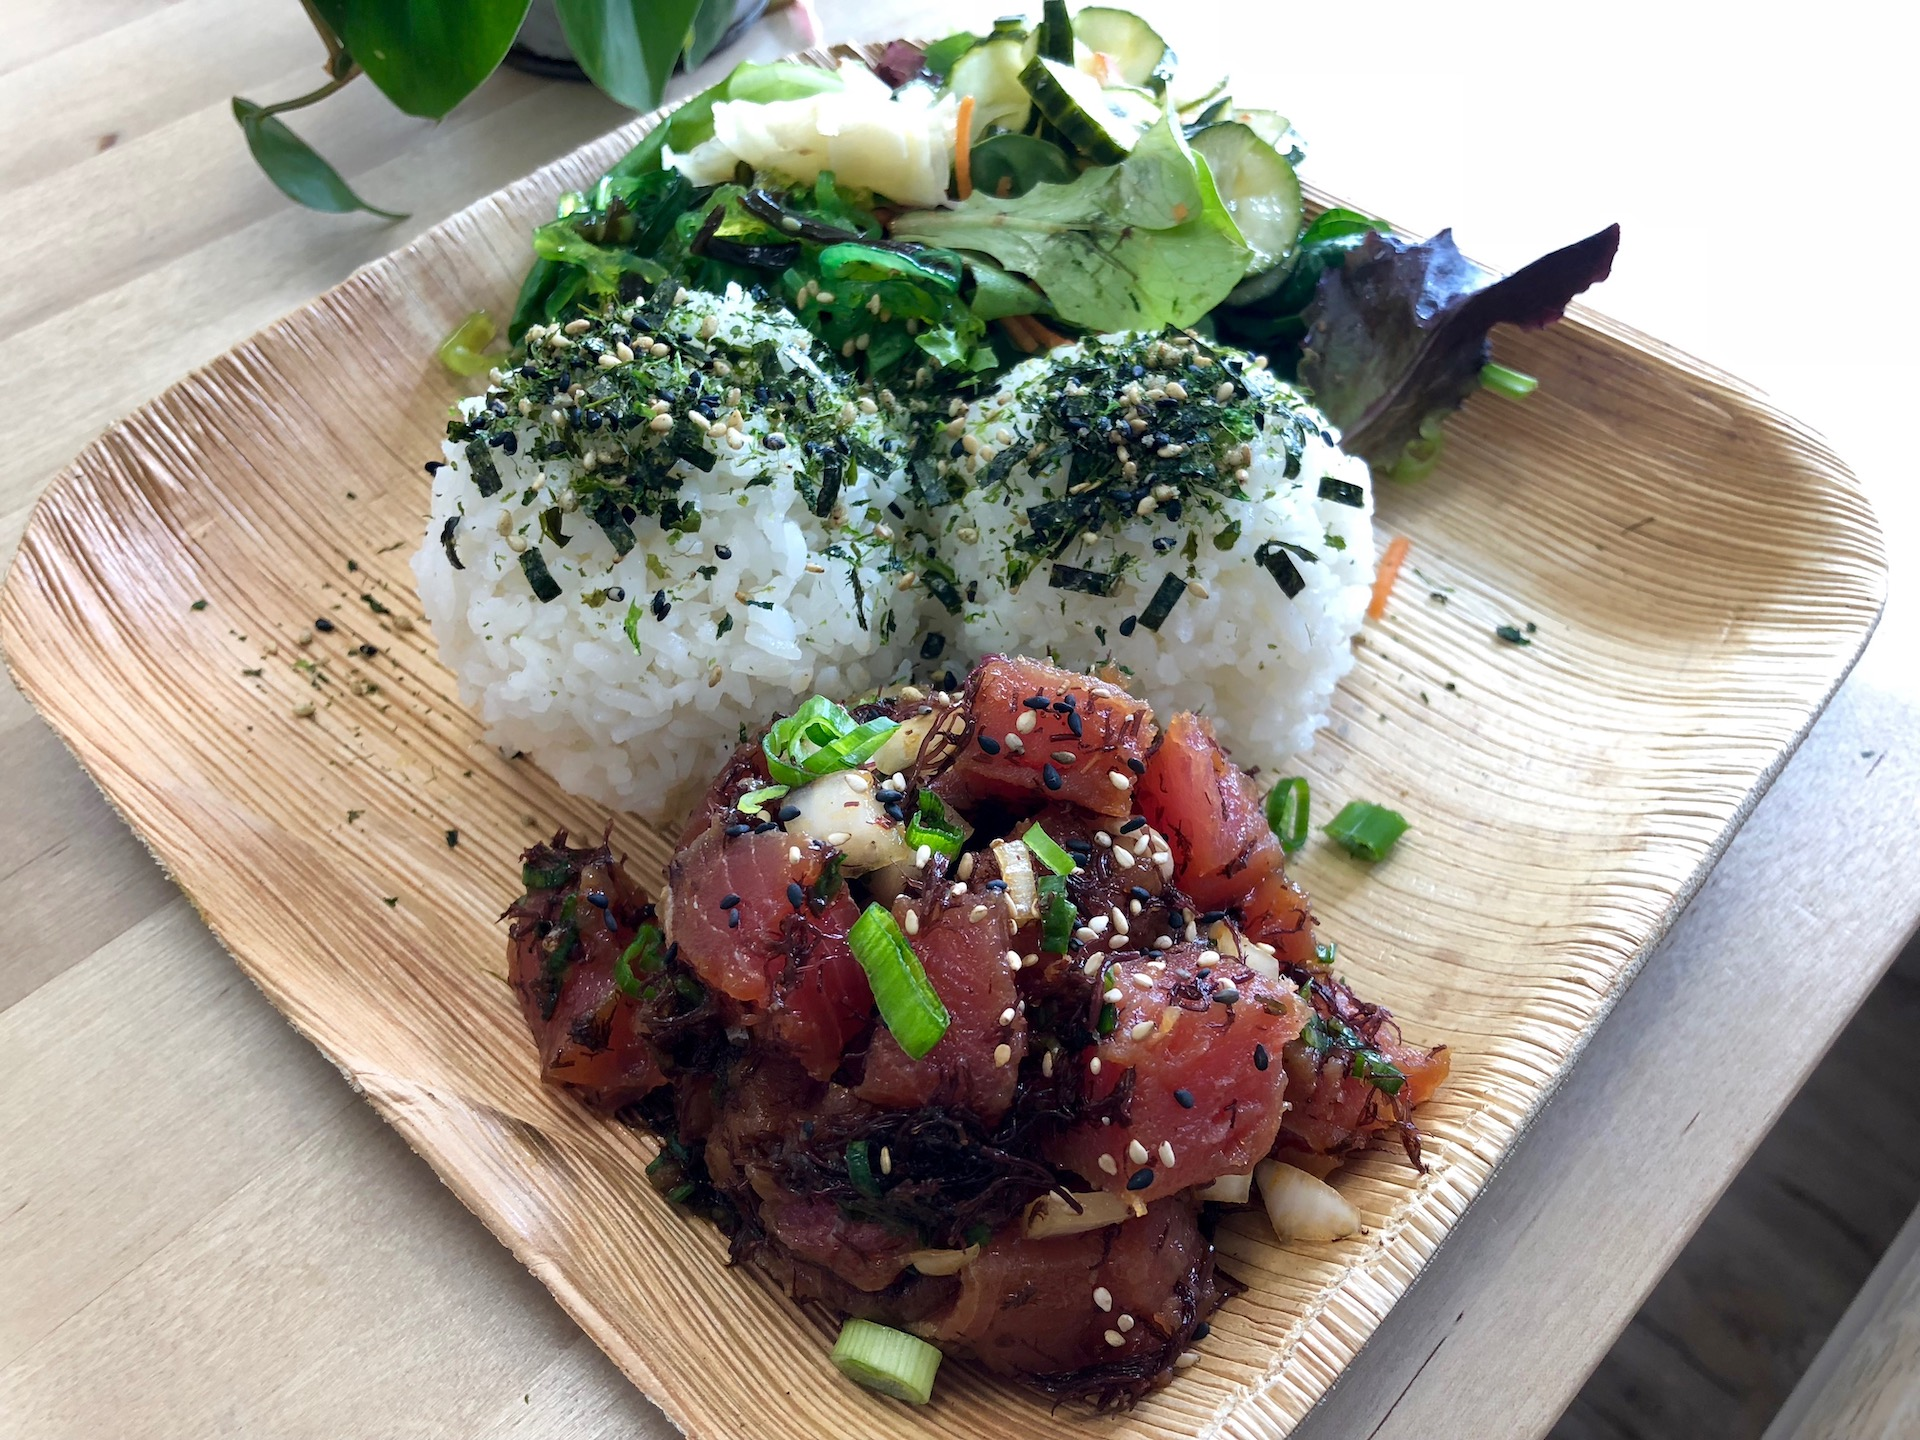 Celebrity Dining: A 'classic shoyu' ahi poke rice plate at Sam Choy's Poke to the Max in San Bruno.